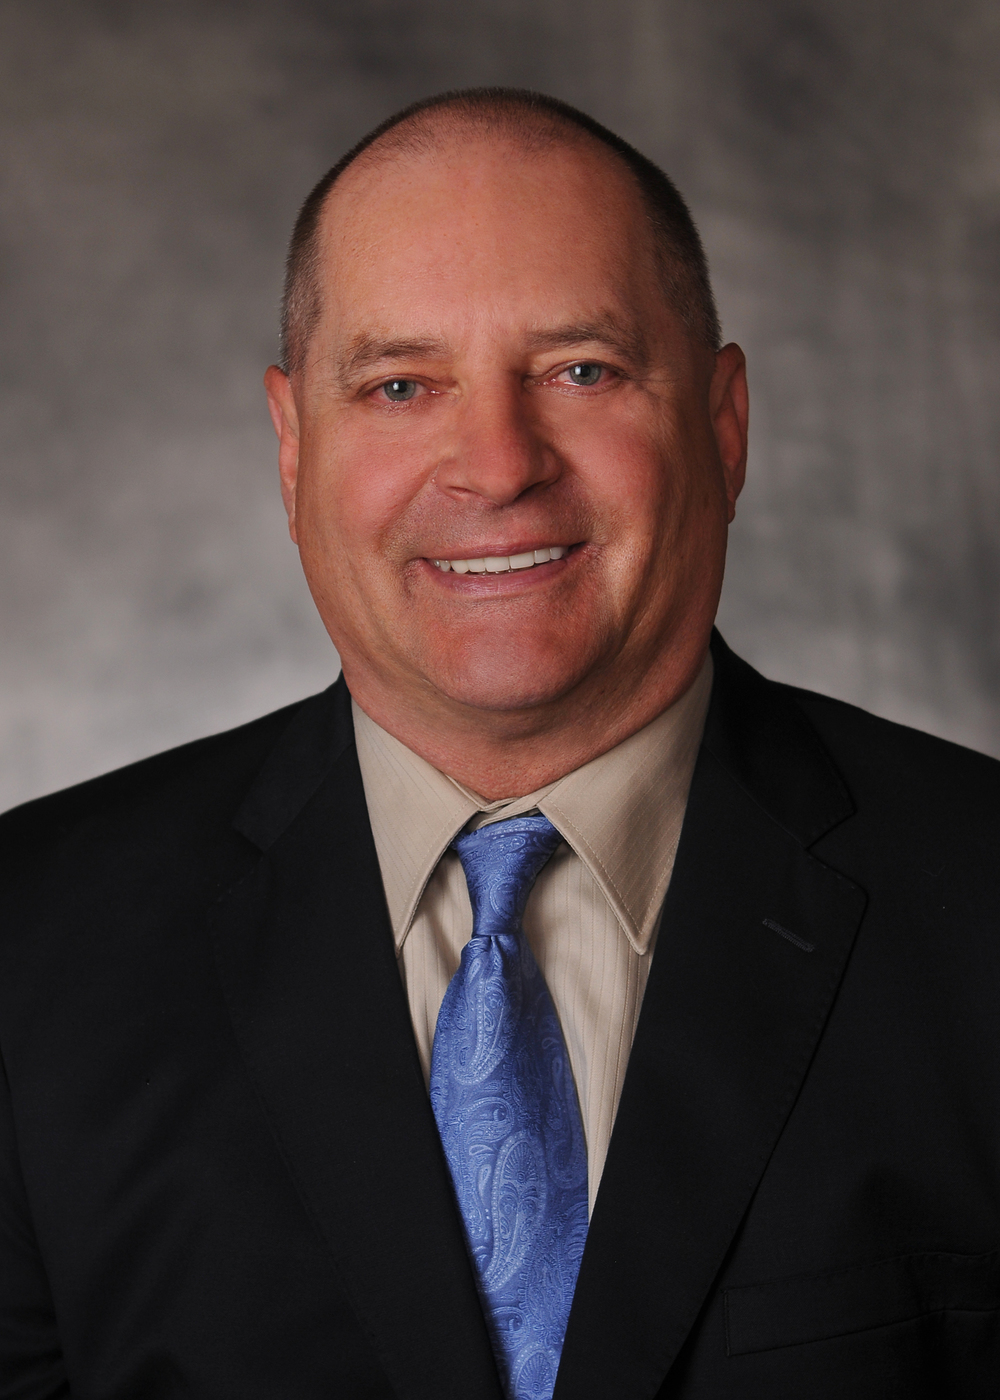 CARL KLINE, JR., LO, Senior Operations Specialist